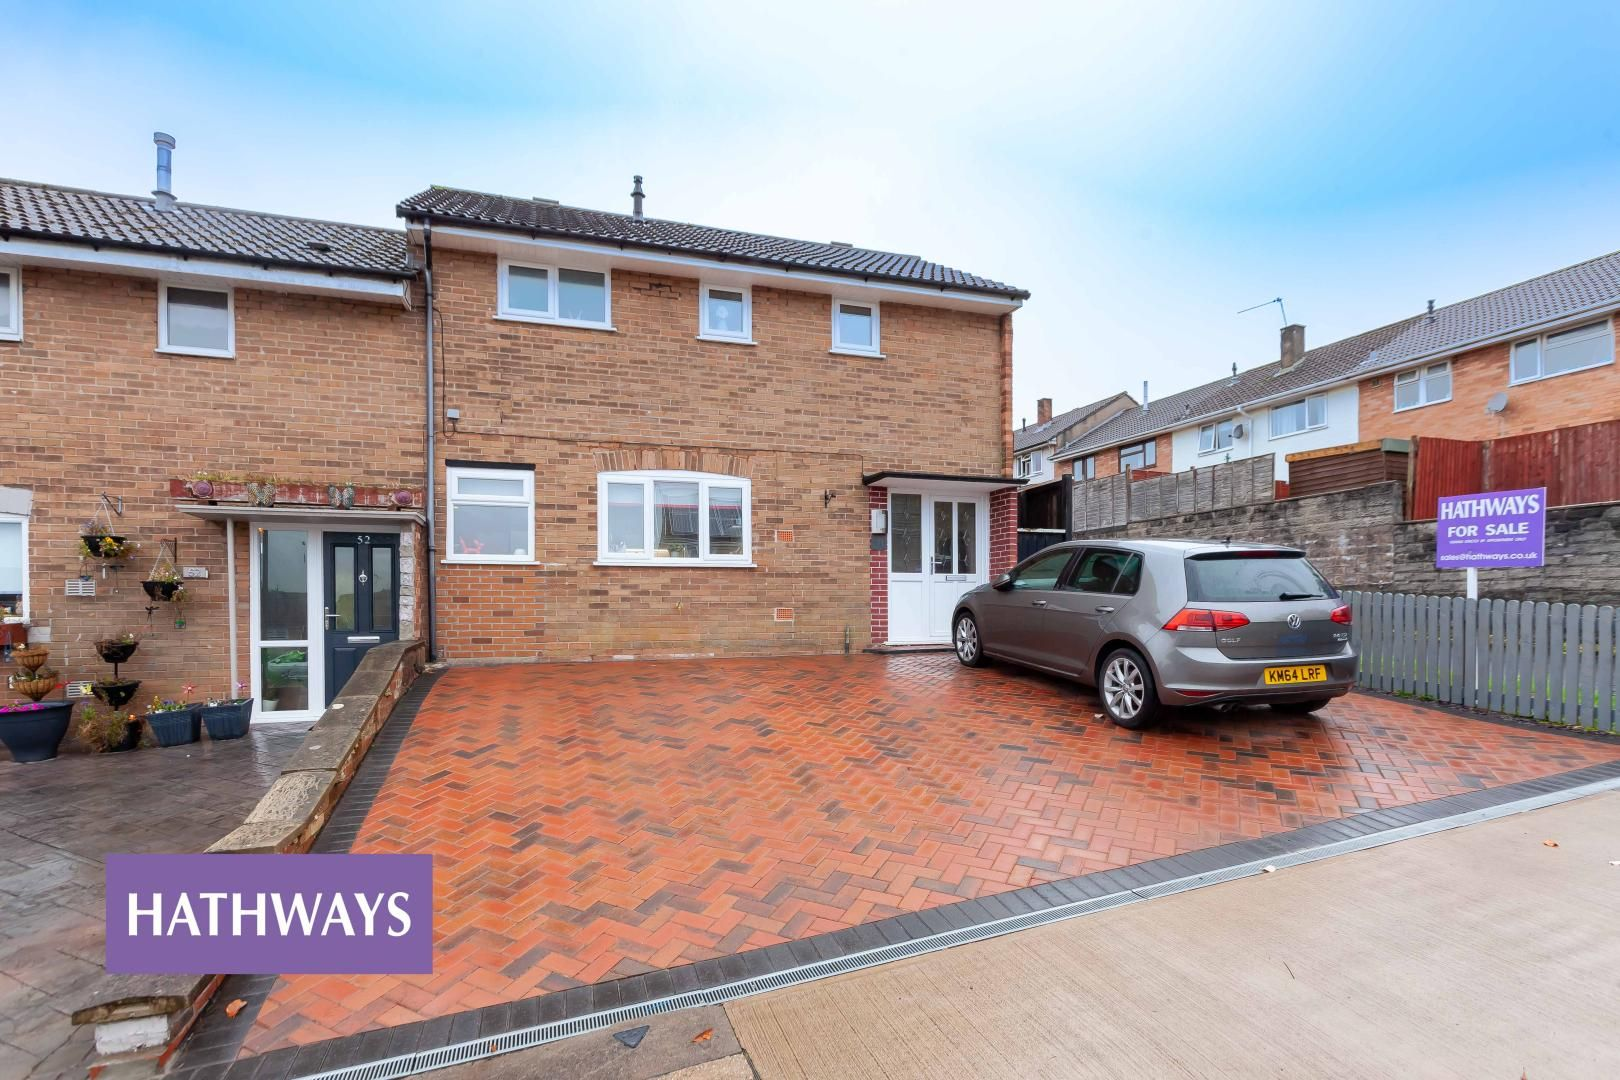 2 bed house for sale in Maendy Wood Rise, NP44